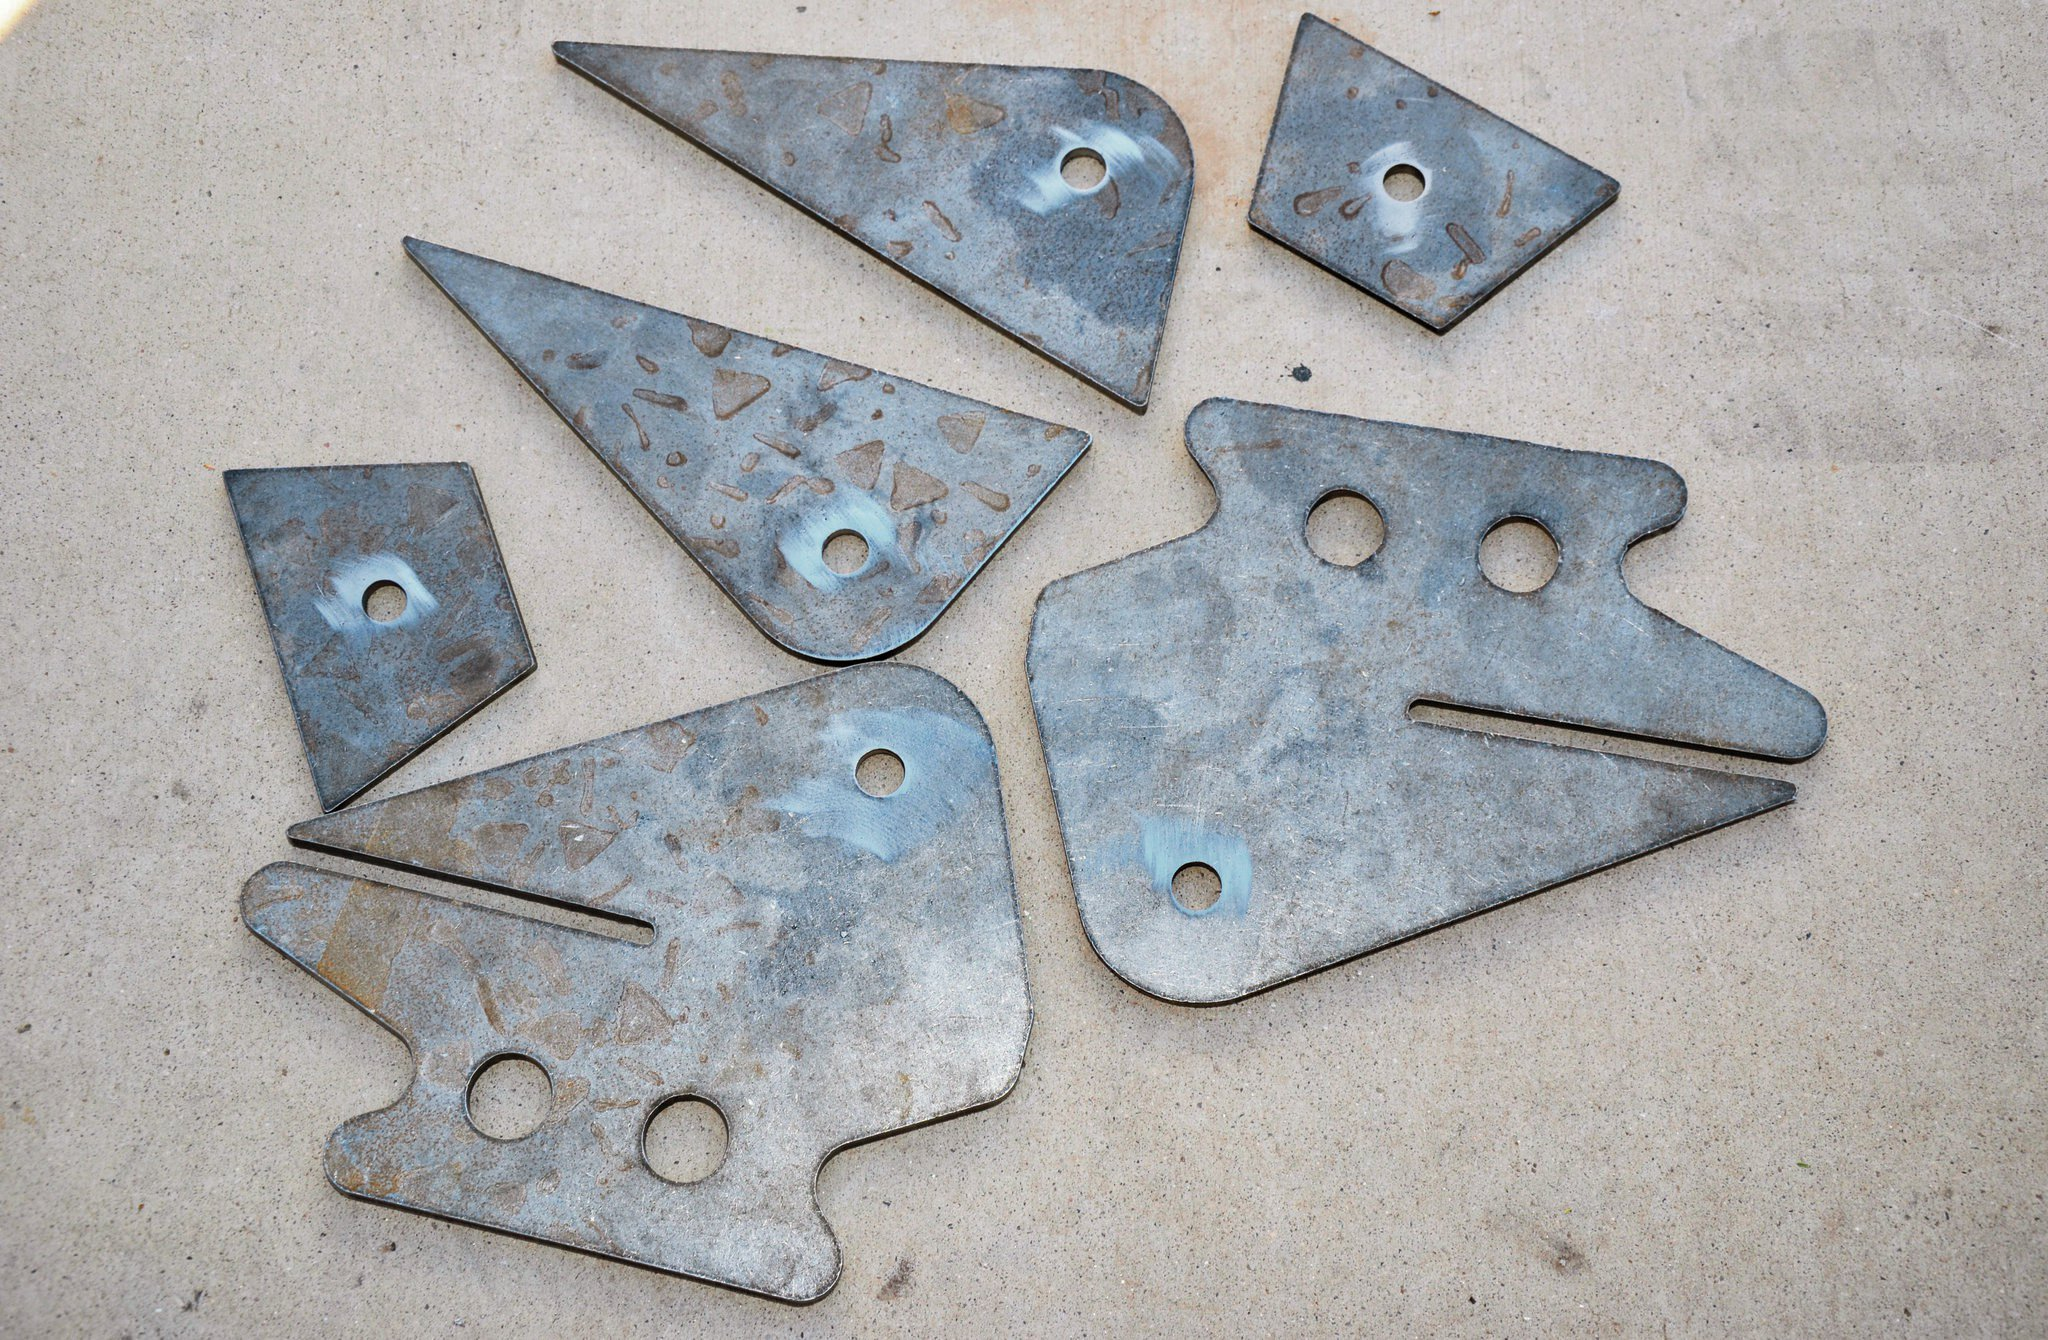 Here are some other brackets they were working on for a different project at Rob Bonney Fab. These are for a solid-axle conversion on a Chevy, so it's not so applicable to us. However, it shows the range of what can be cut, including fish-mouthed frame plates and mounting holes. Add in some work with a metal brake and you can have almost anything you can imagine pre-built and ready to weld in place. Sure, you could do this with a metal band saw, plasma cutter, or the like, but it would take forever and not look nearly this clean.